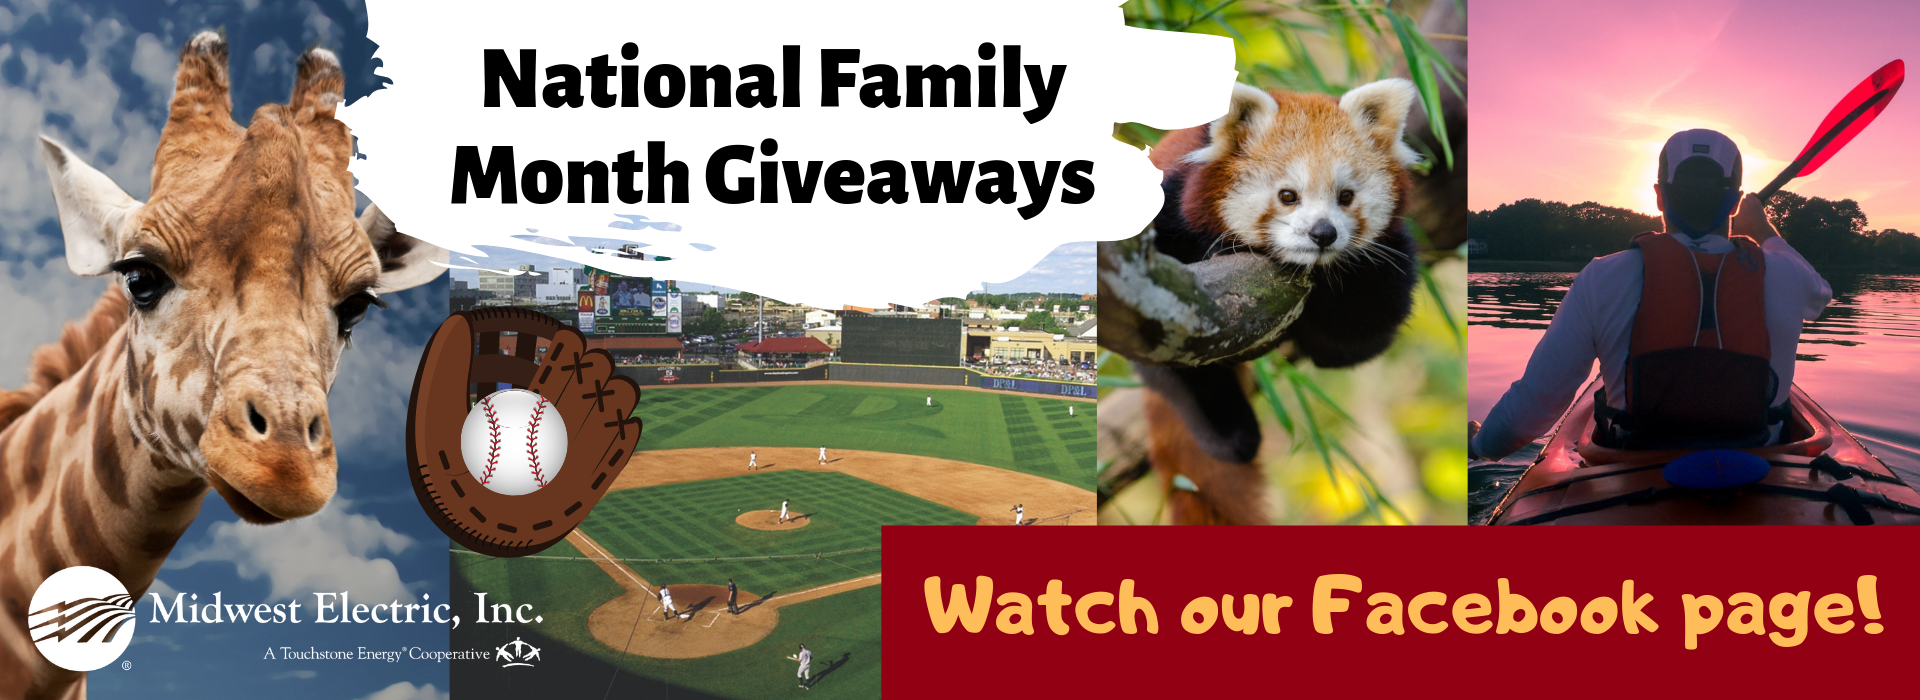 National Family Month Giveaways in June - see our Facebook page